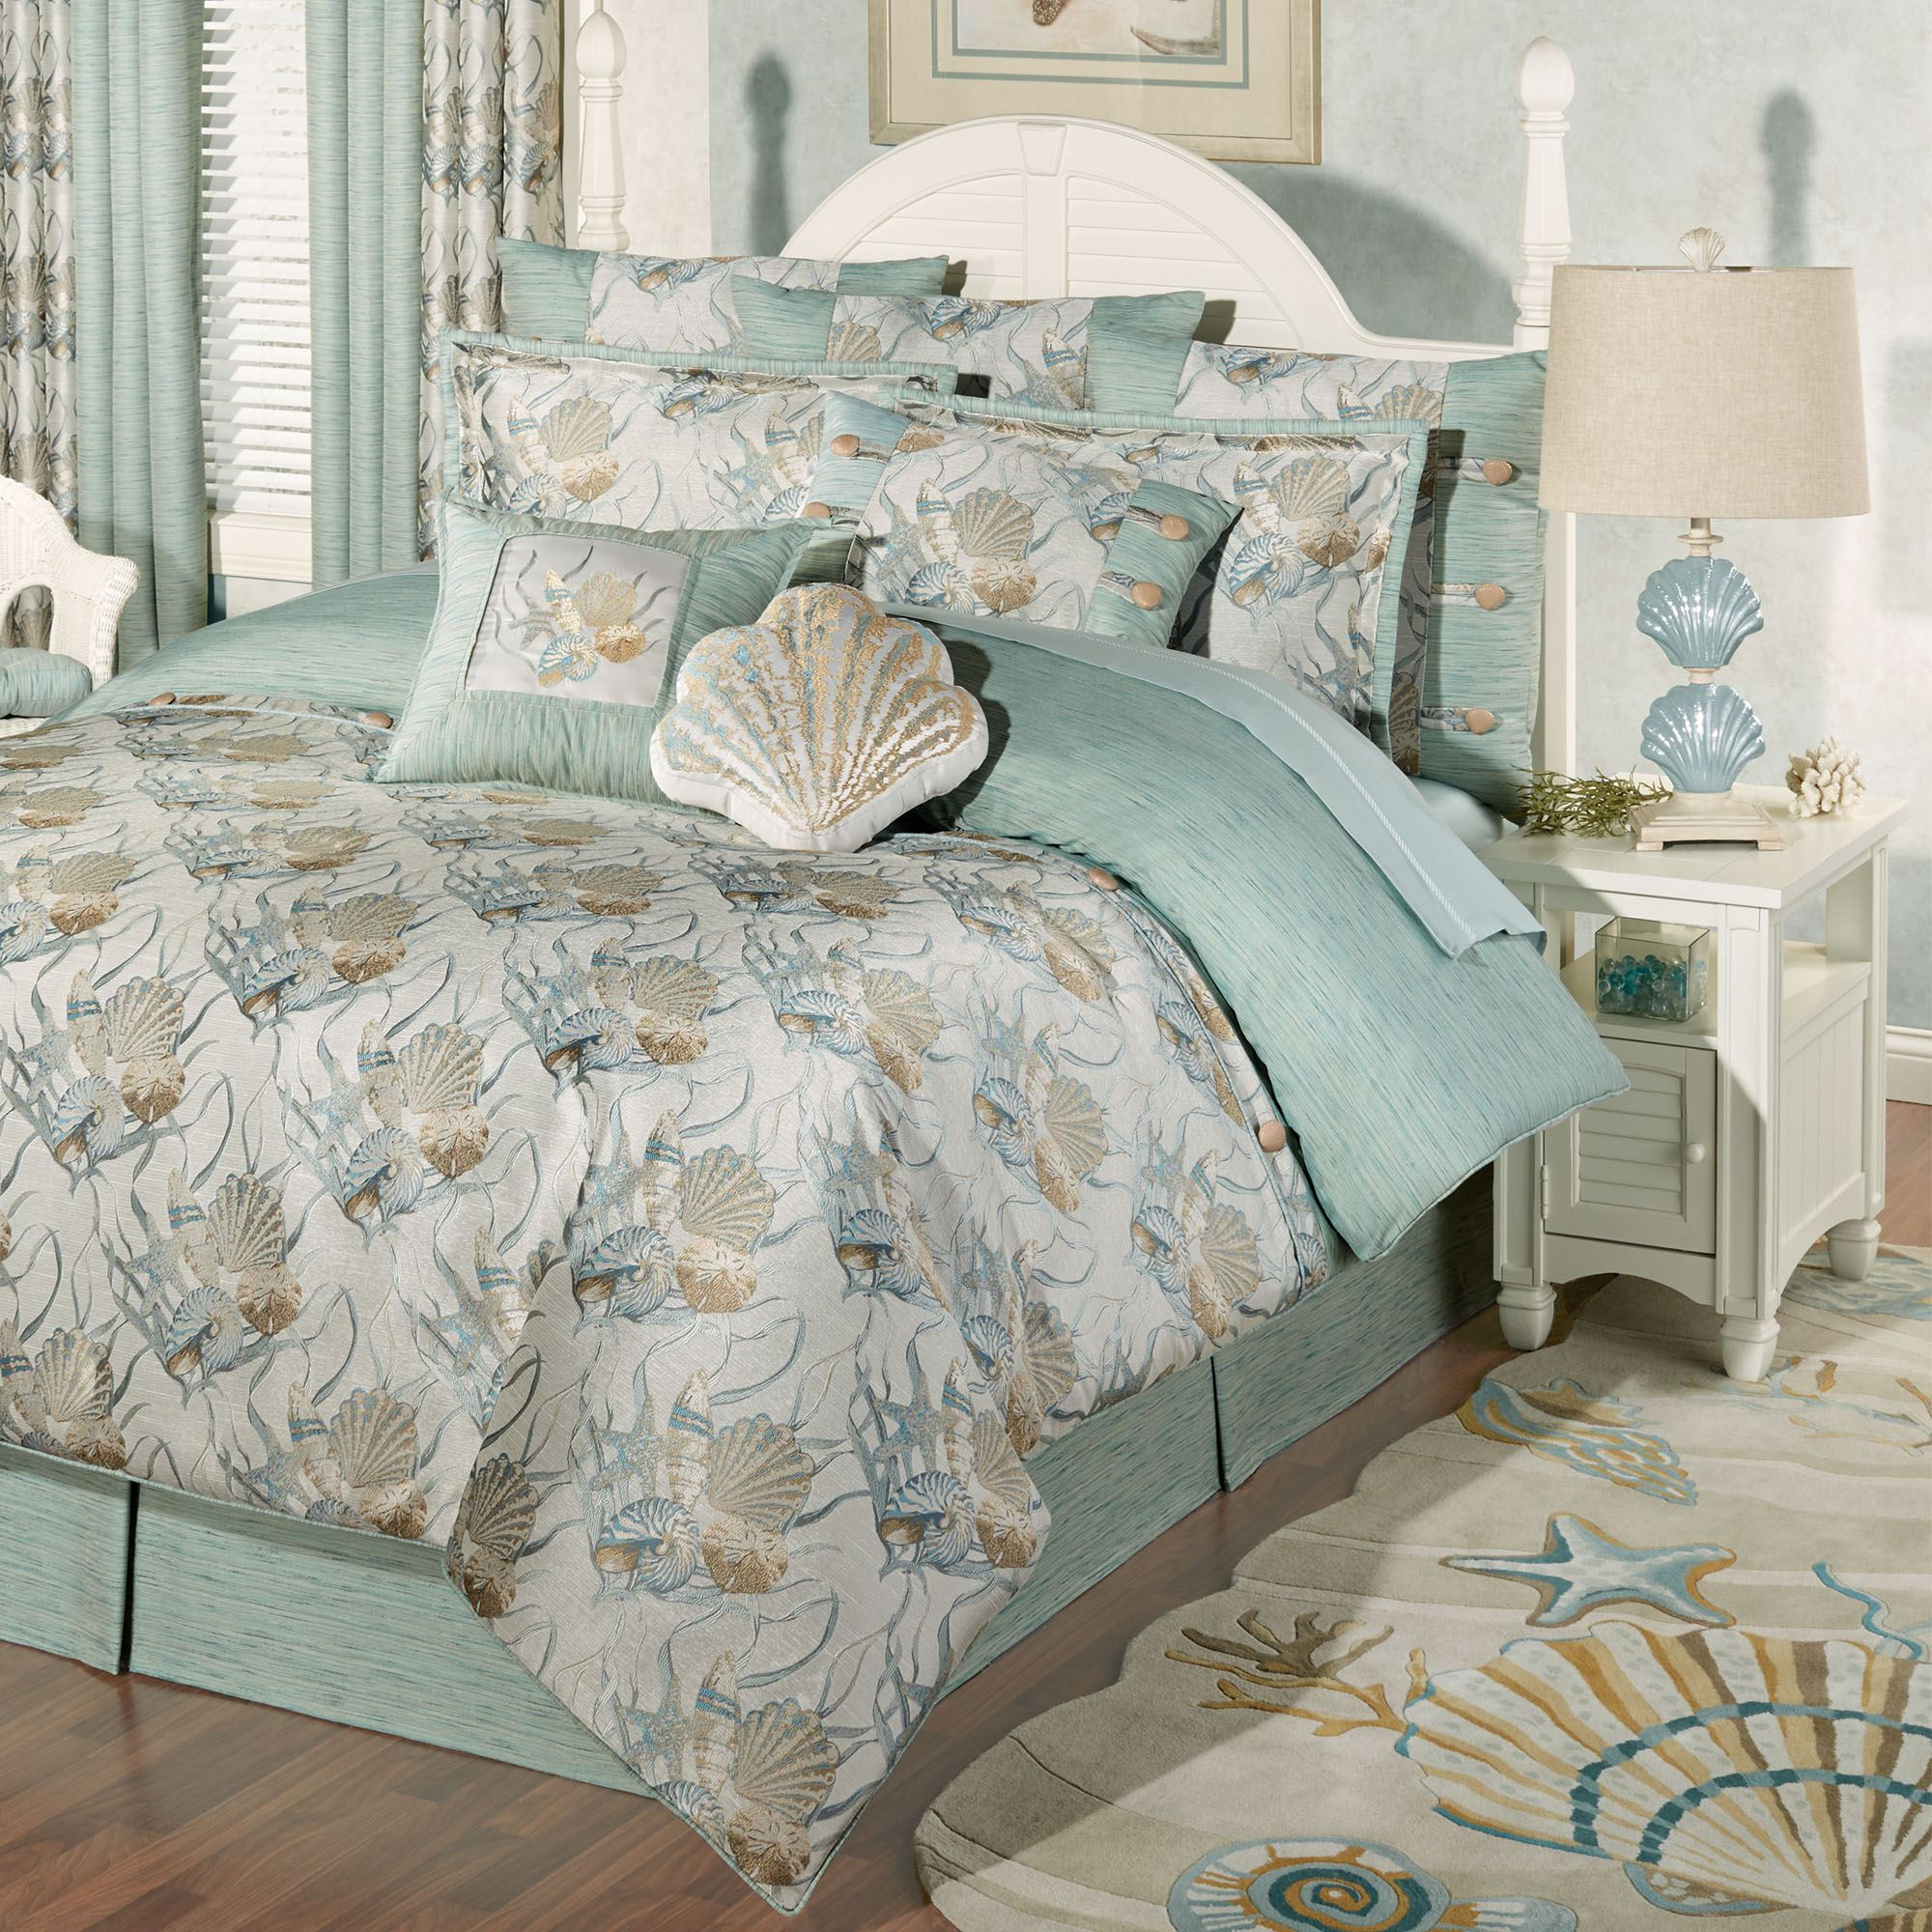 Superior Sea Shell Sheets. Coastal Dream Seashell Comforter Bedding .